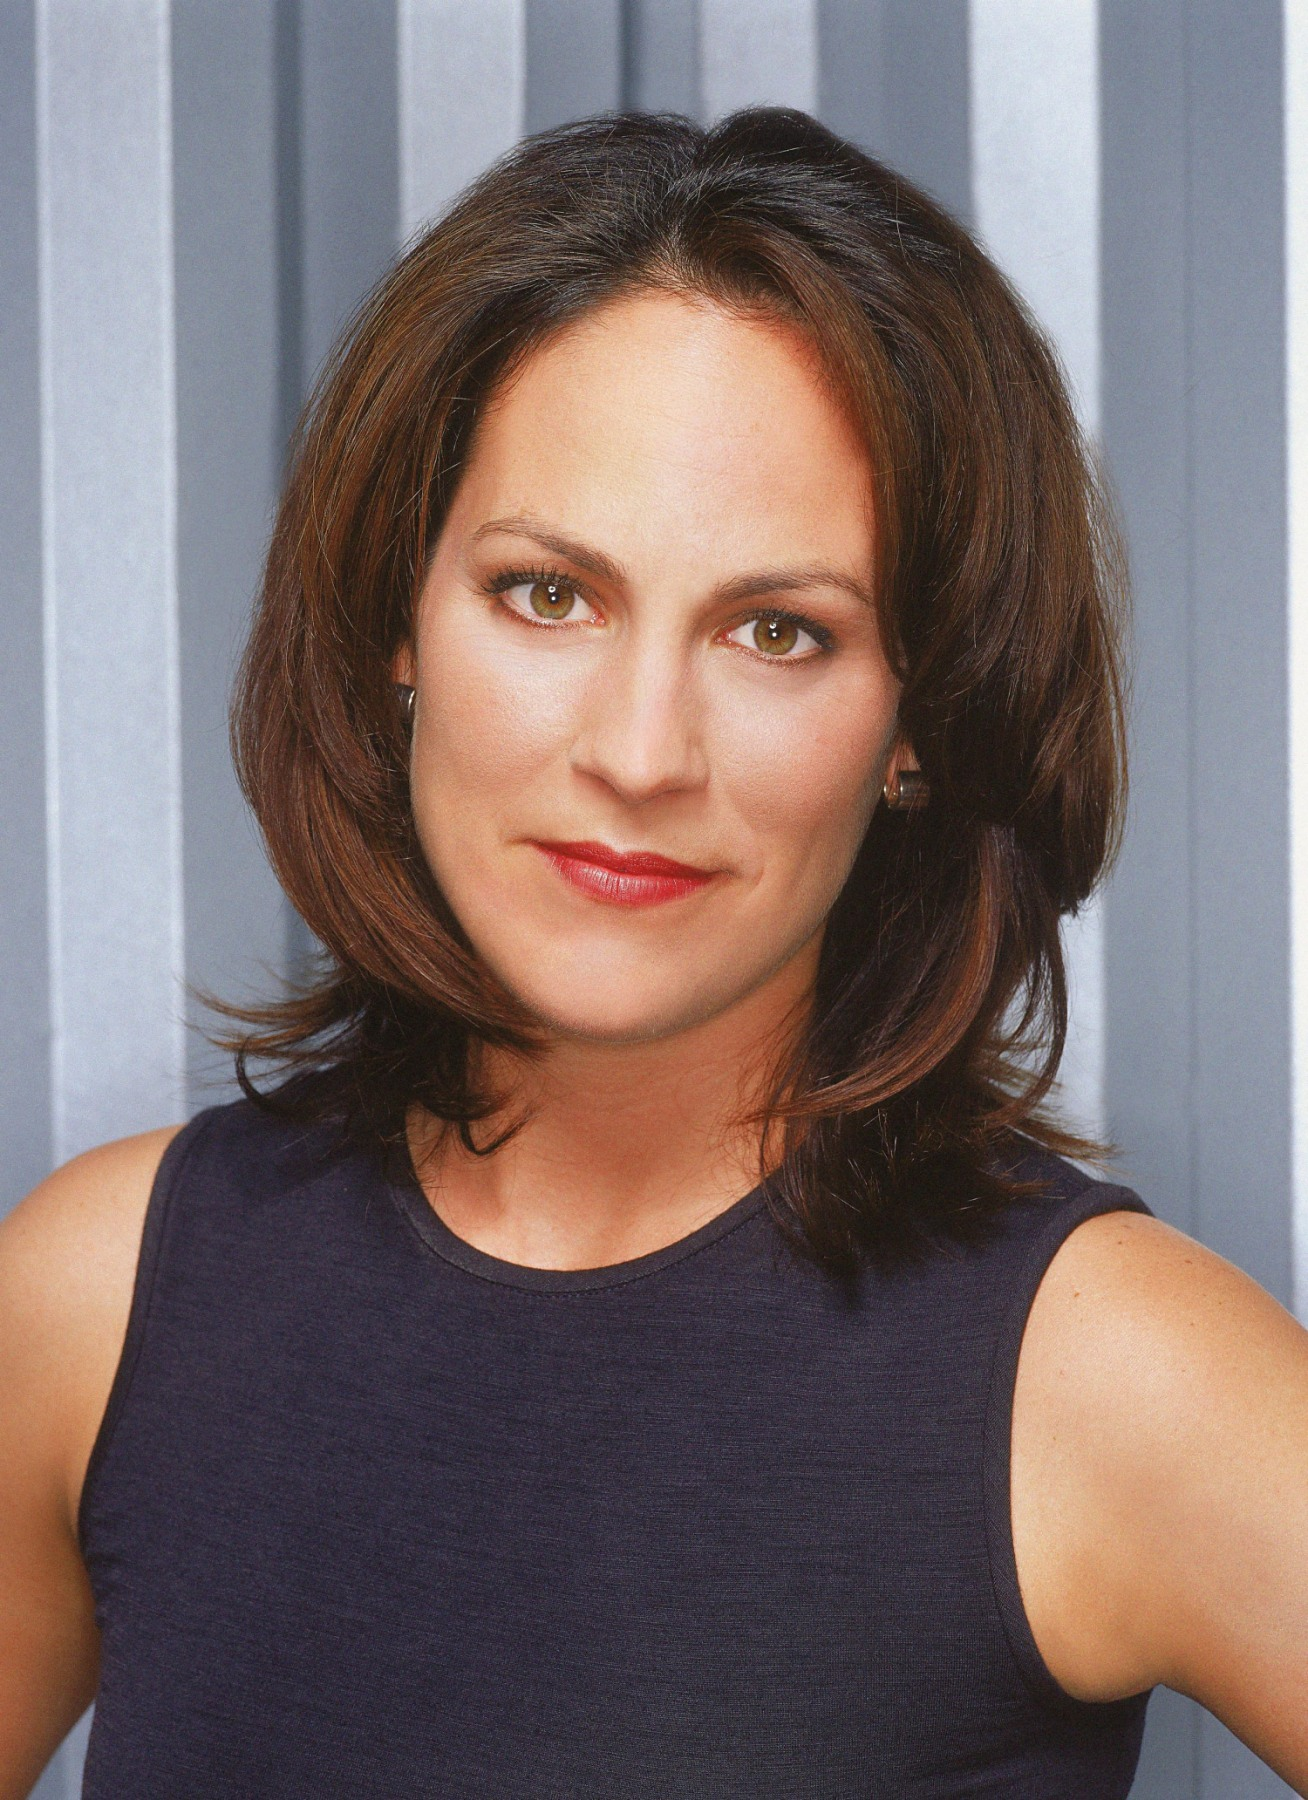 annabeth gish wikiannabeth gish x files, annabeth gish height, annabeth gish 2016, annabeth gish instagram, annabeth gish imdb, annabeth gish swimsuit, annabeth gish, annabeth gish sons of anarchy, annabeth gish wiki, annabeth gish once upon a time, annabeth gish pretty little liars, annabeth gish twitter, annabeth gish pictures, annabeth gish dailymotion, annabeth gish net worth, annabeth gish mystic pizza, annabeth gish weight loss, annabeth gish nudography